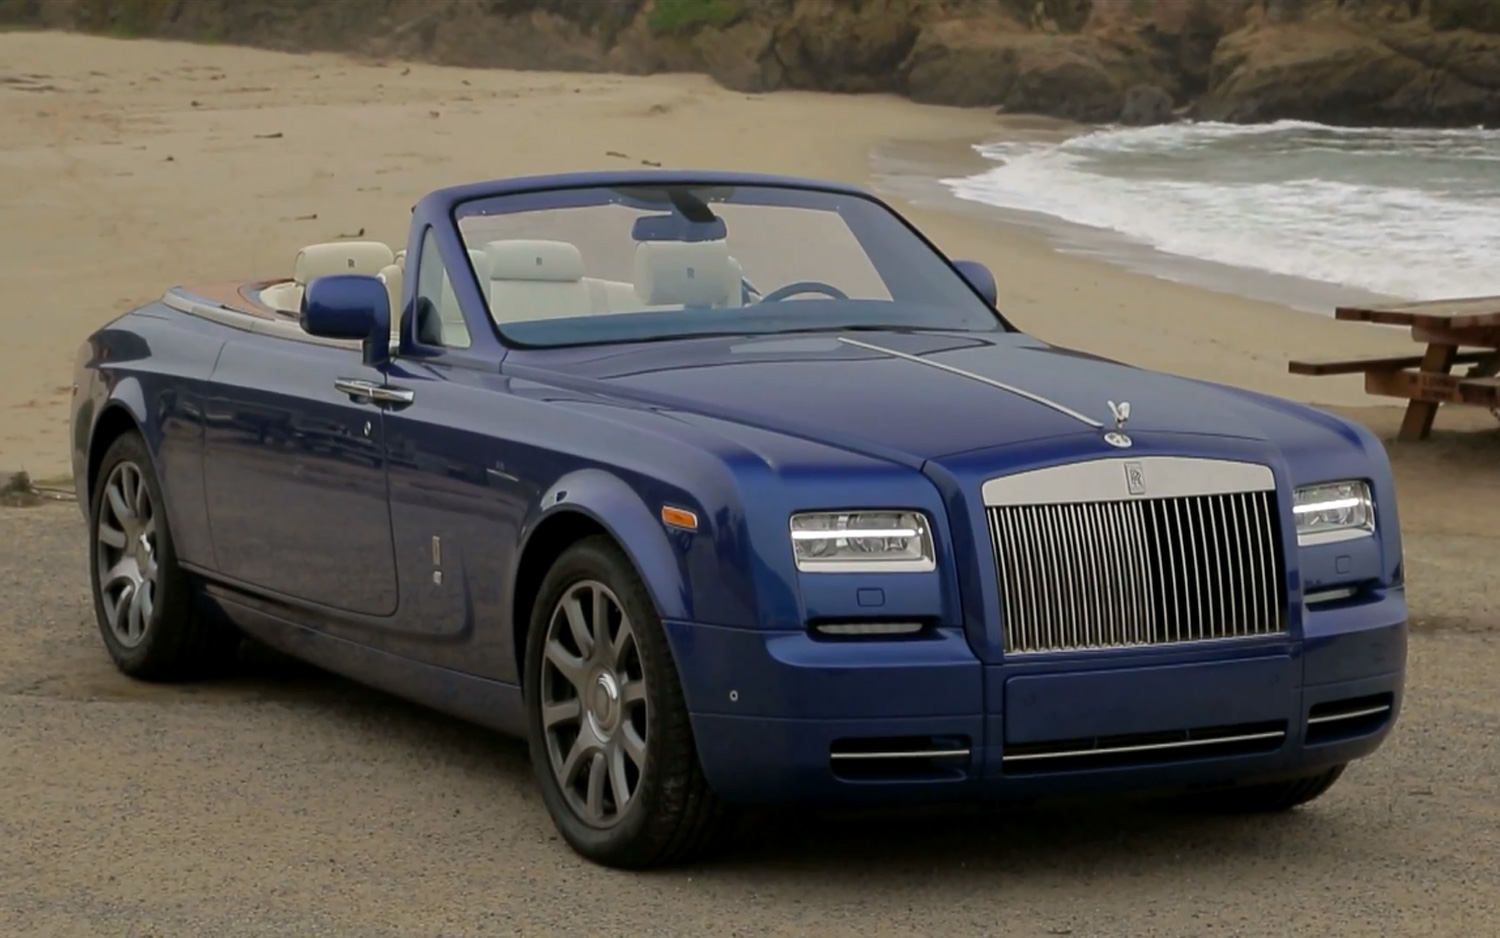 Rolls-Royce Phantom Drophead Coupe 2013 #1